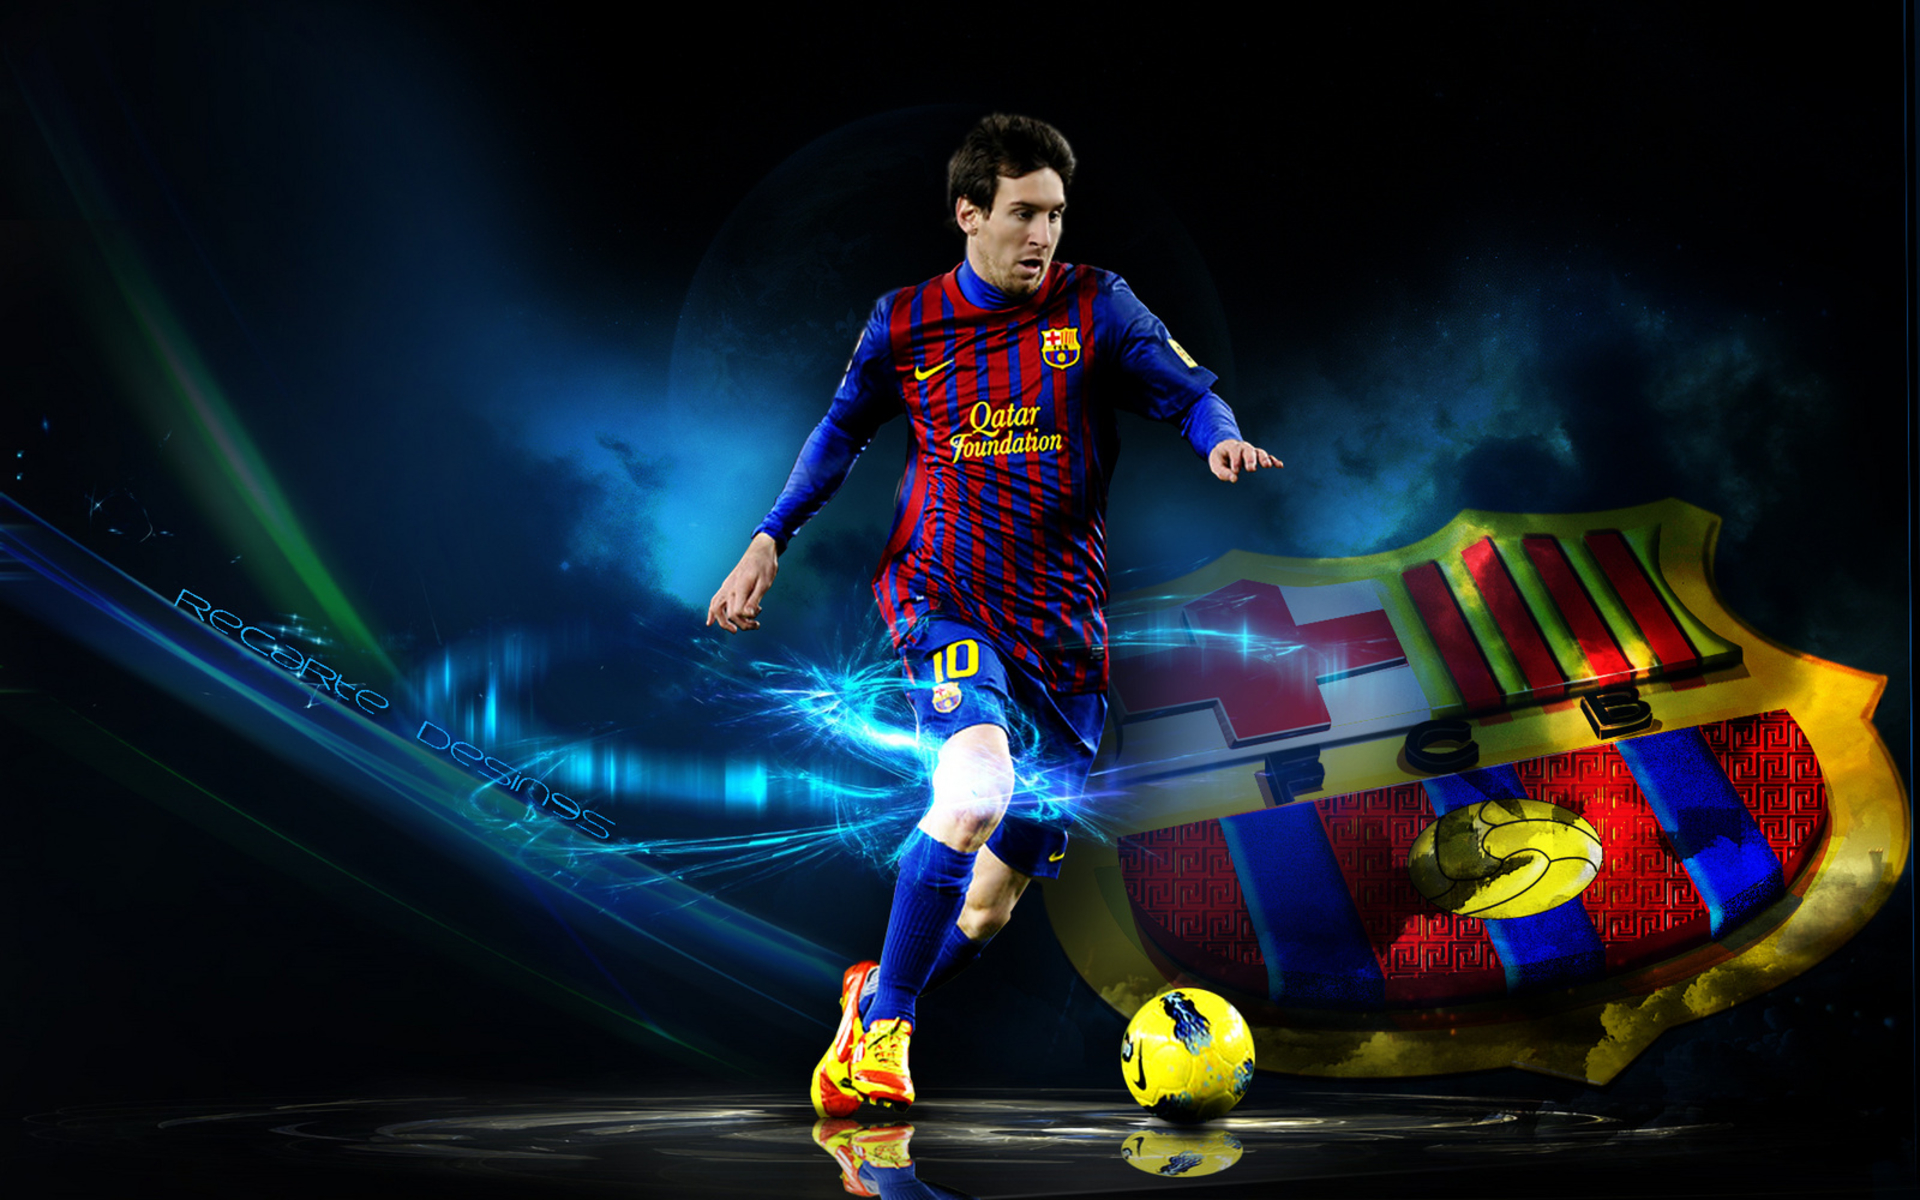 Download Football HD Wallpapers For Pc Gallery Messi Futebol 1920x1200